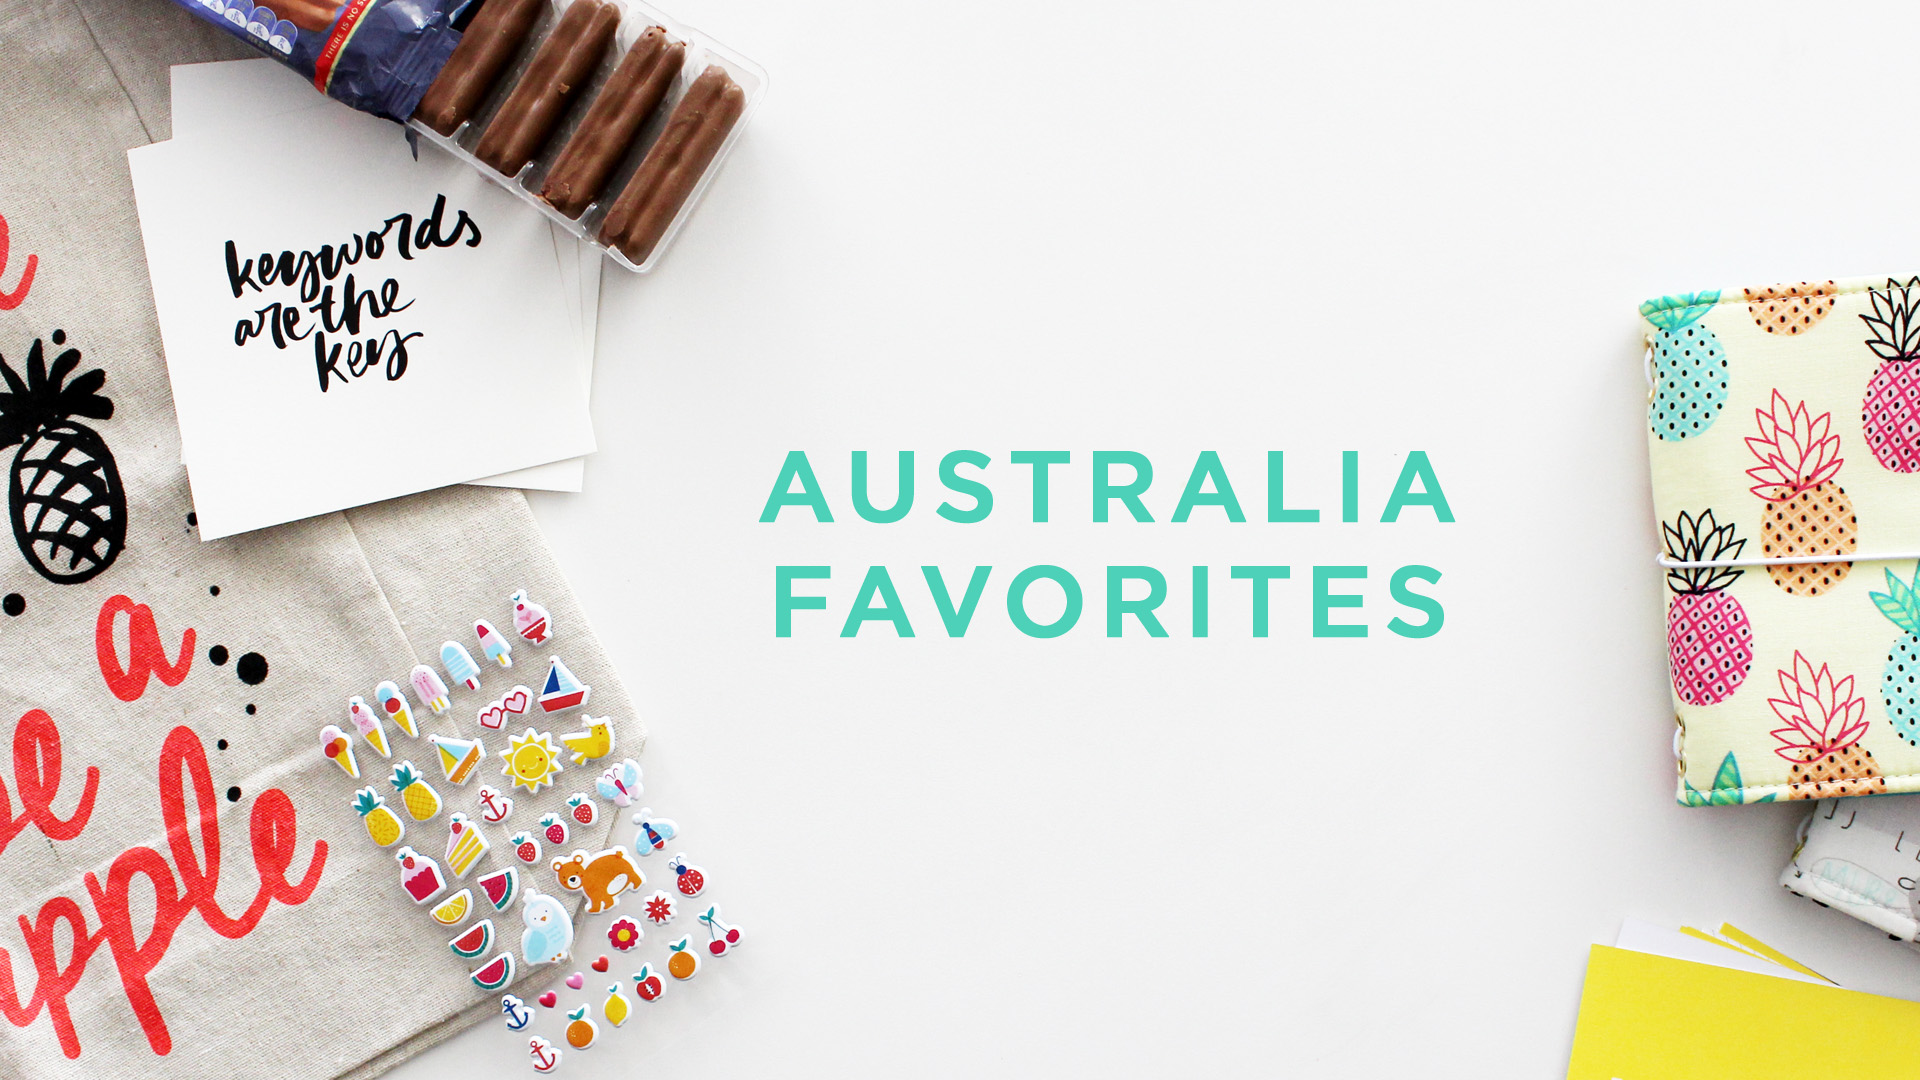 Amy Tangerine's Favorite Things from Australia